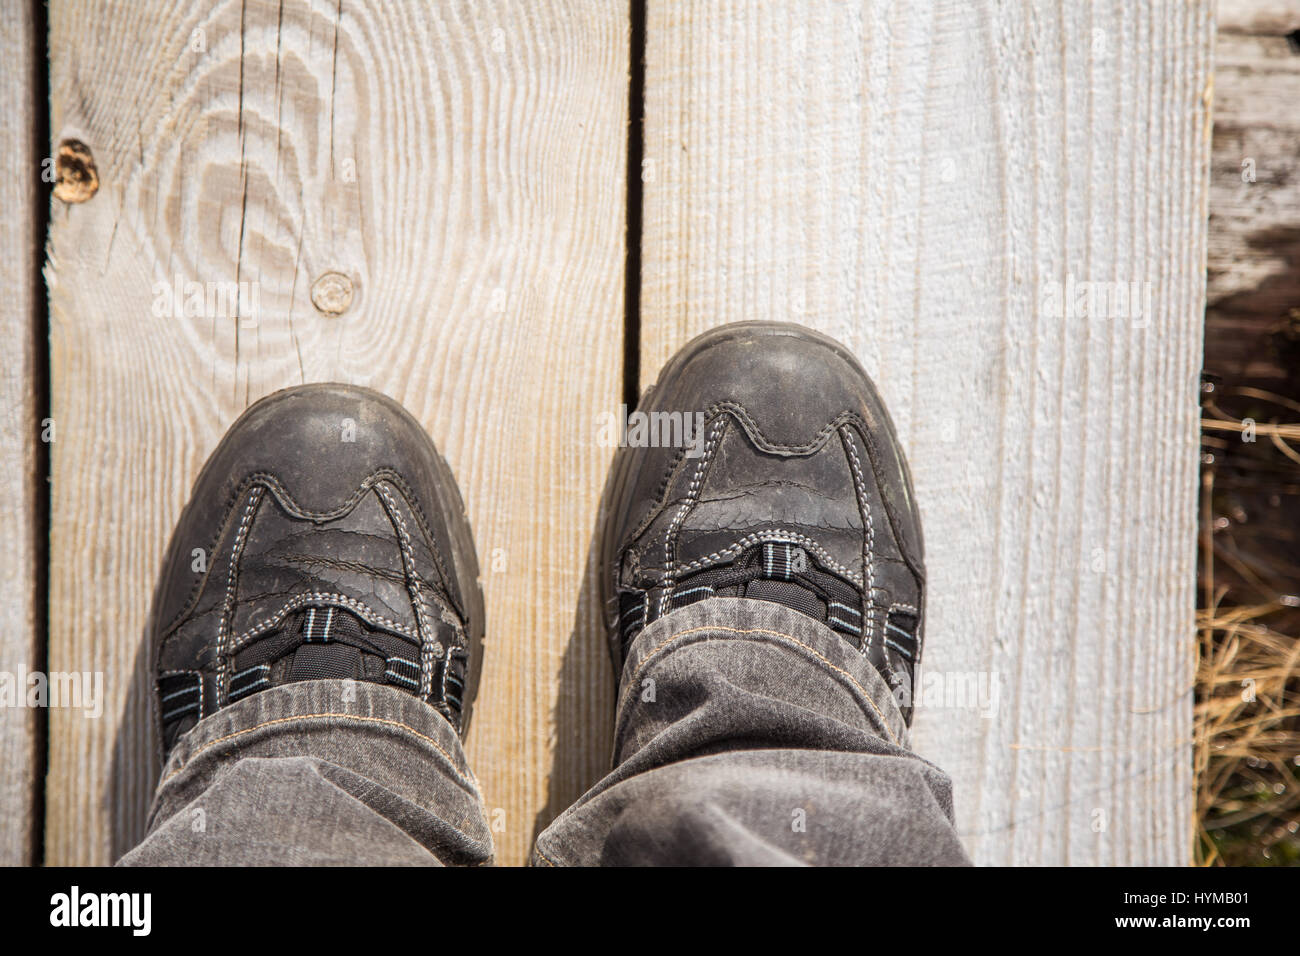 Two feet on a wooden footpath during the hiking in an early spring. - Stock Image